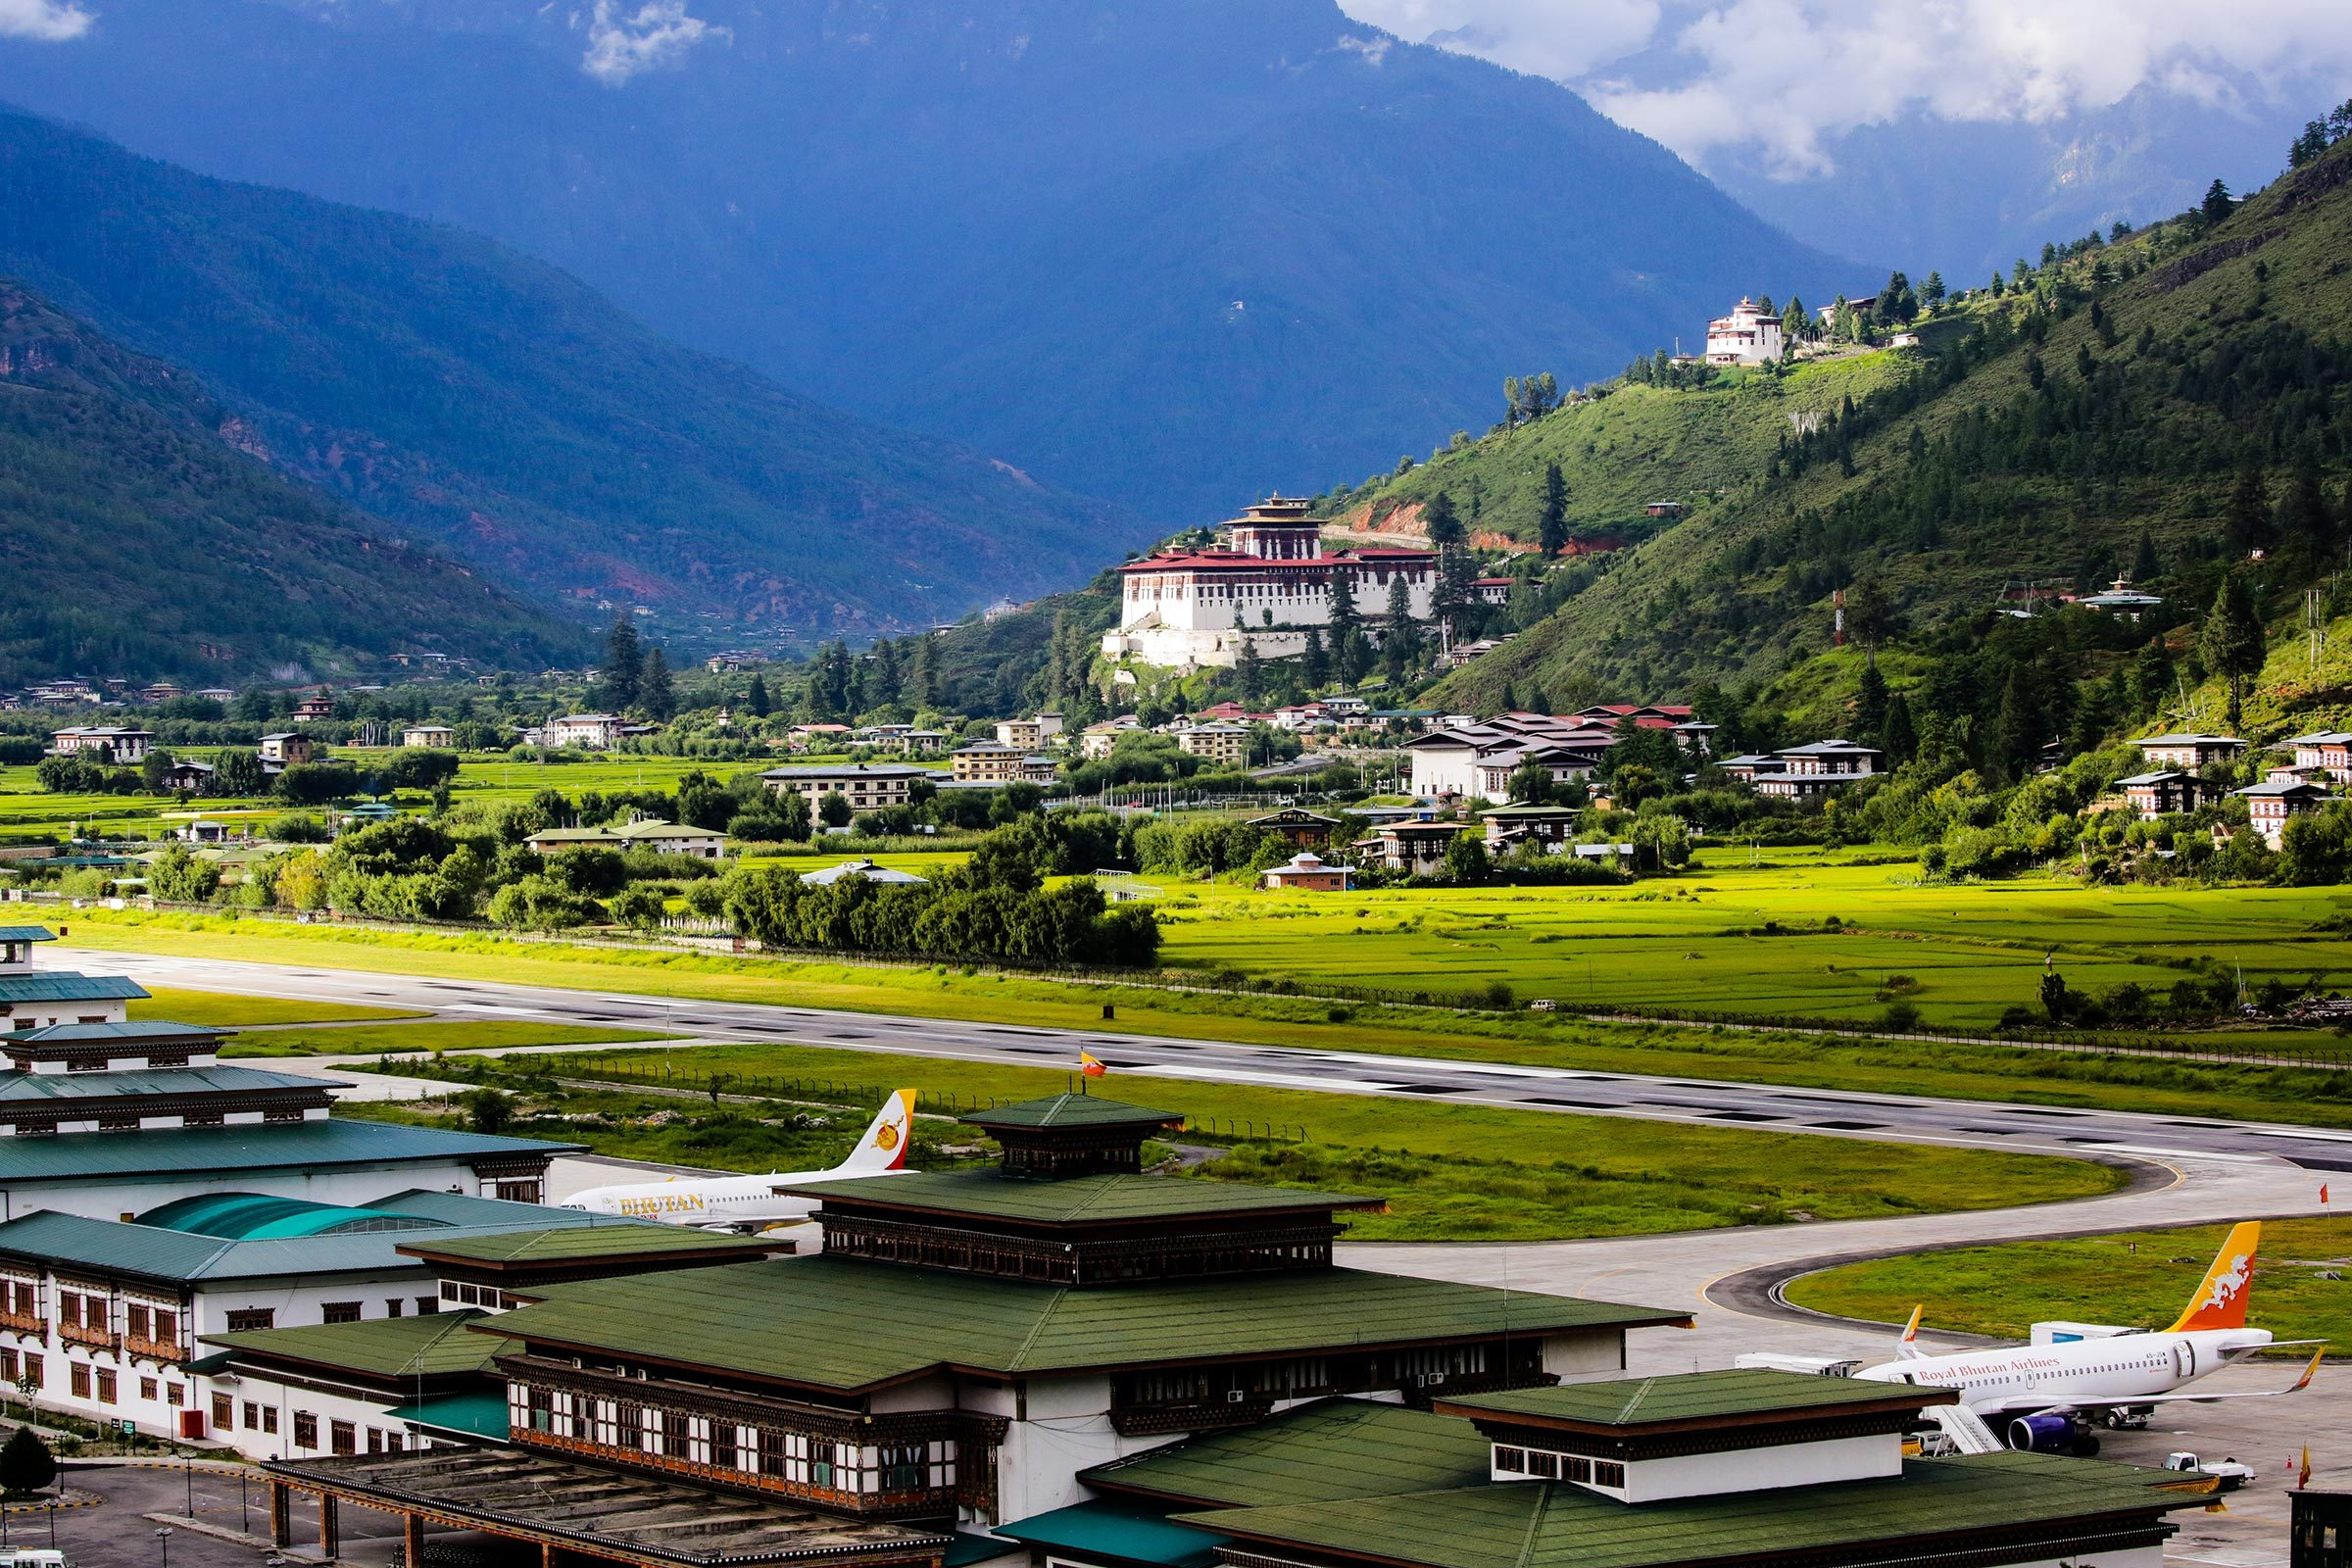 Paro Rinpung Dzong with Paro International Airport in the foreground